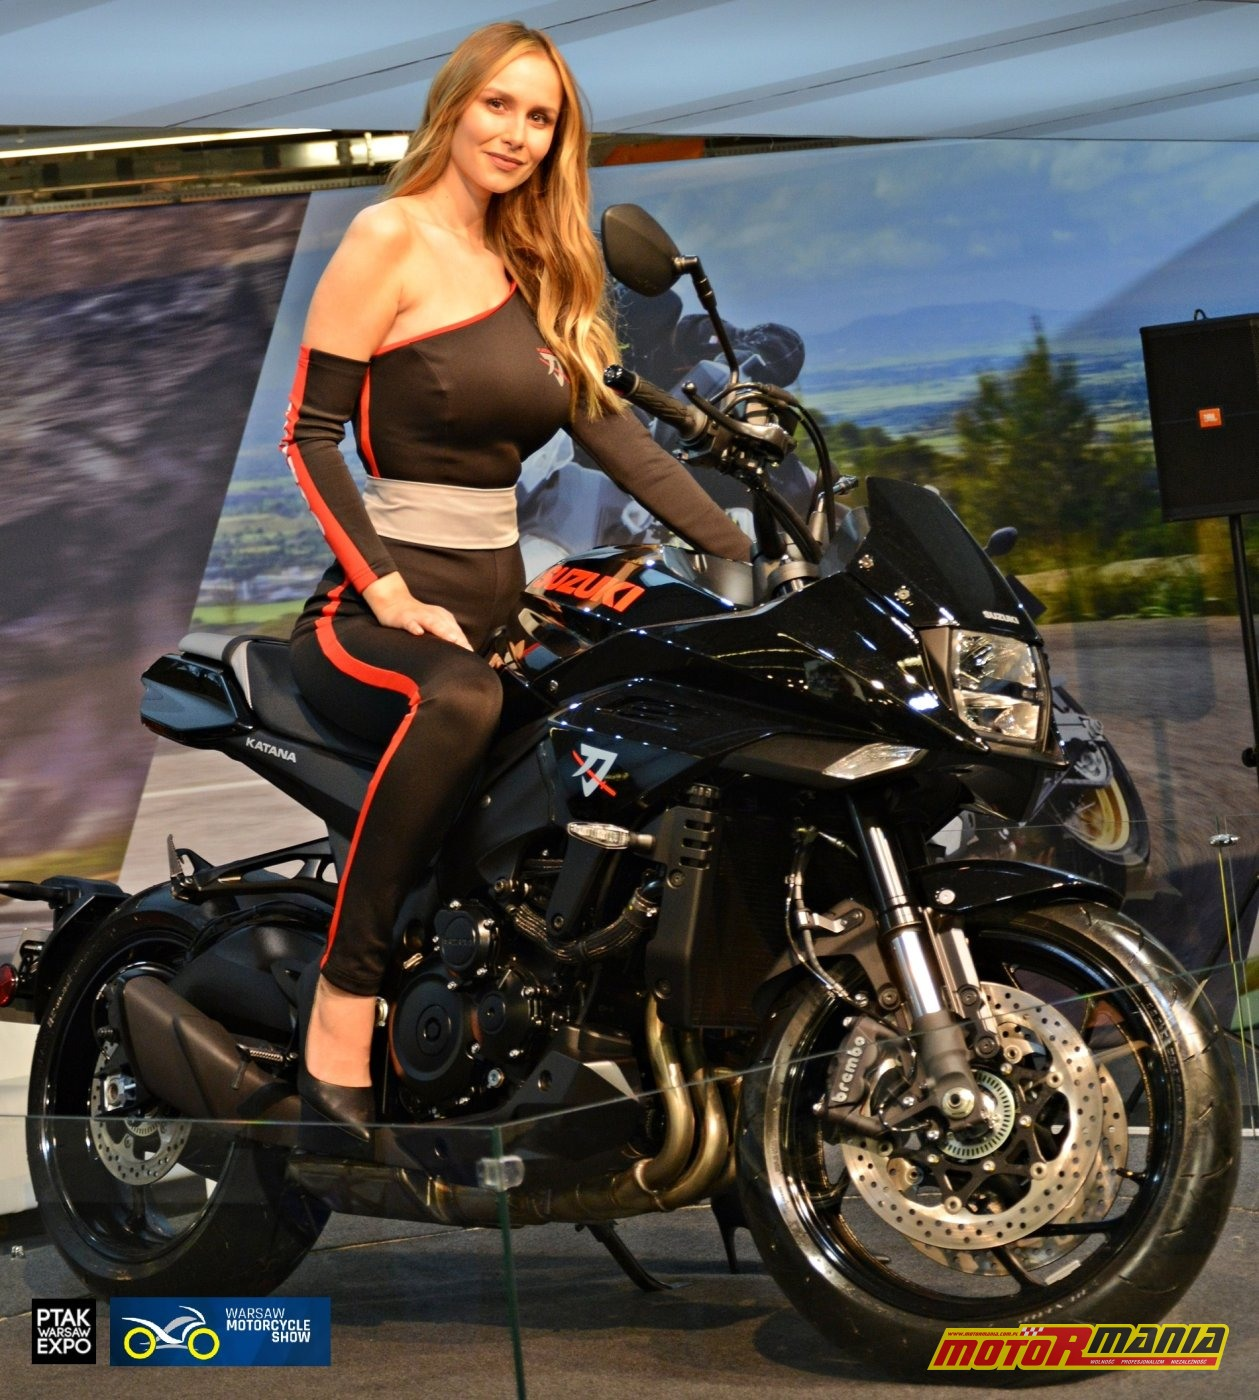 Warsaw Motorcycle Show 2019 (8)